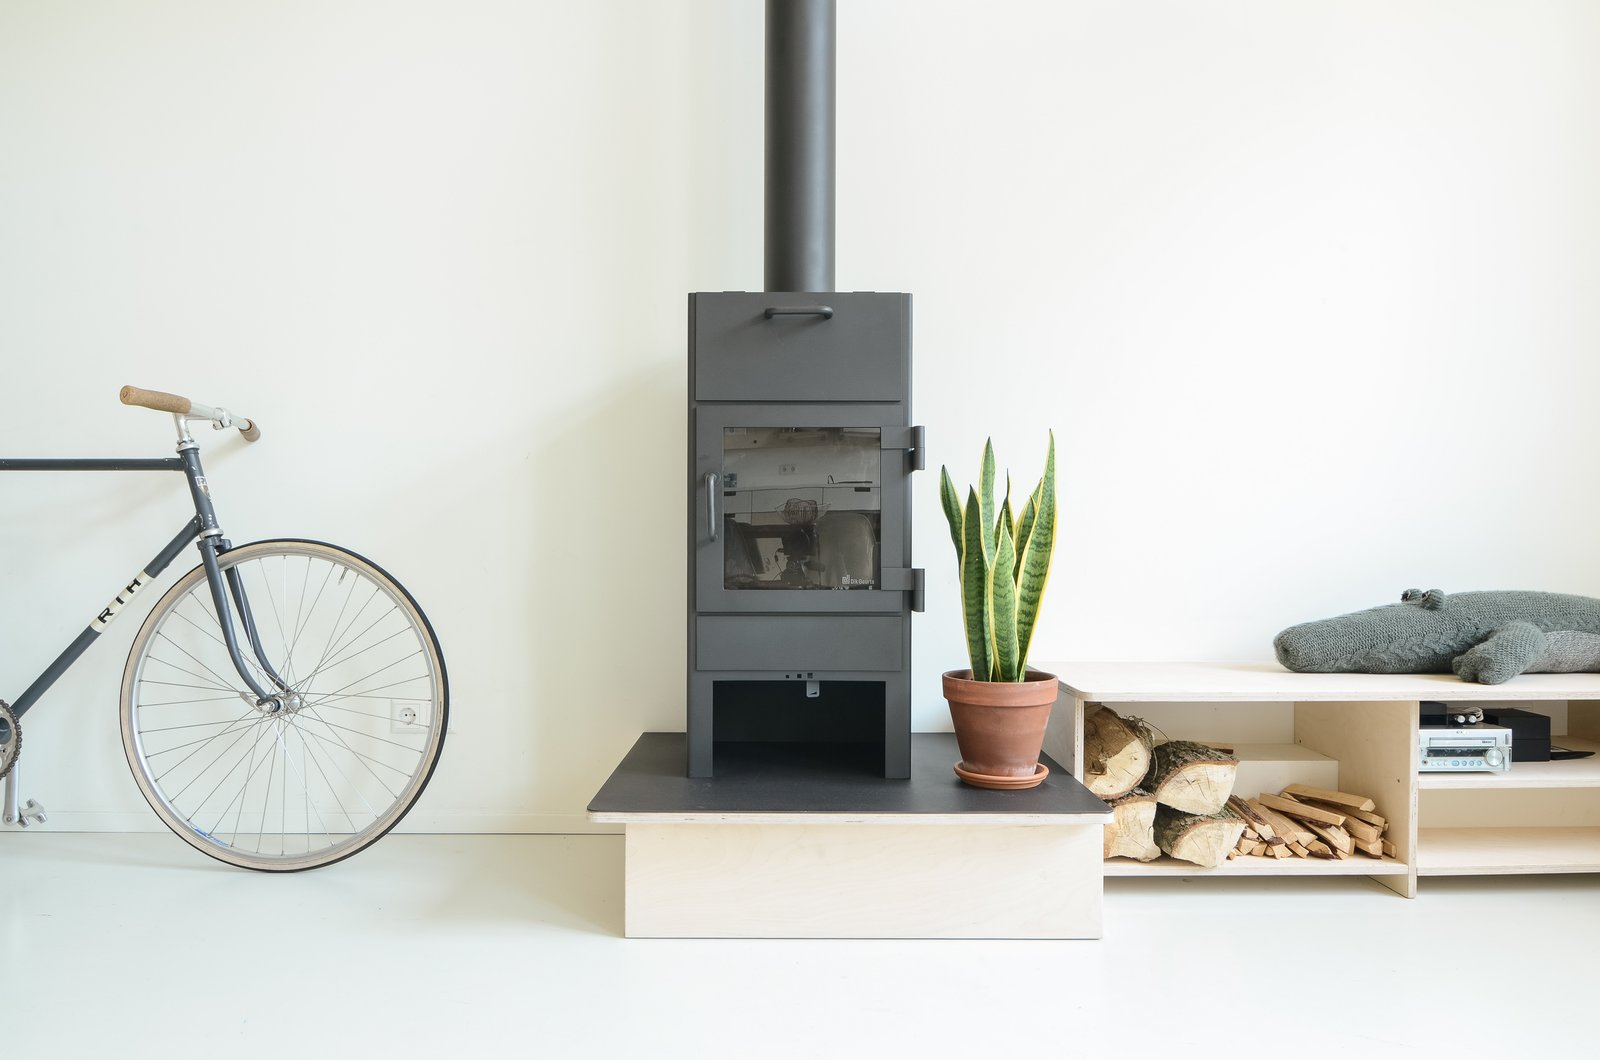 Photo courtesy of Standard Studio  97+ Modern Fireplace Ideas by Dwell from Scandinavian Inspired Design